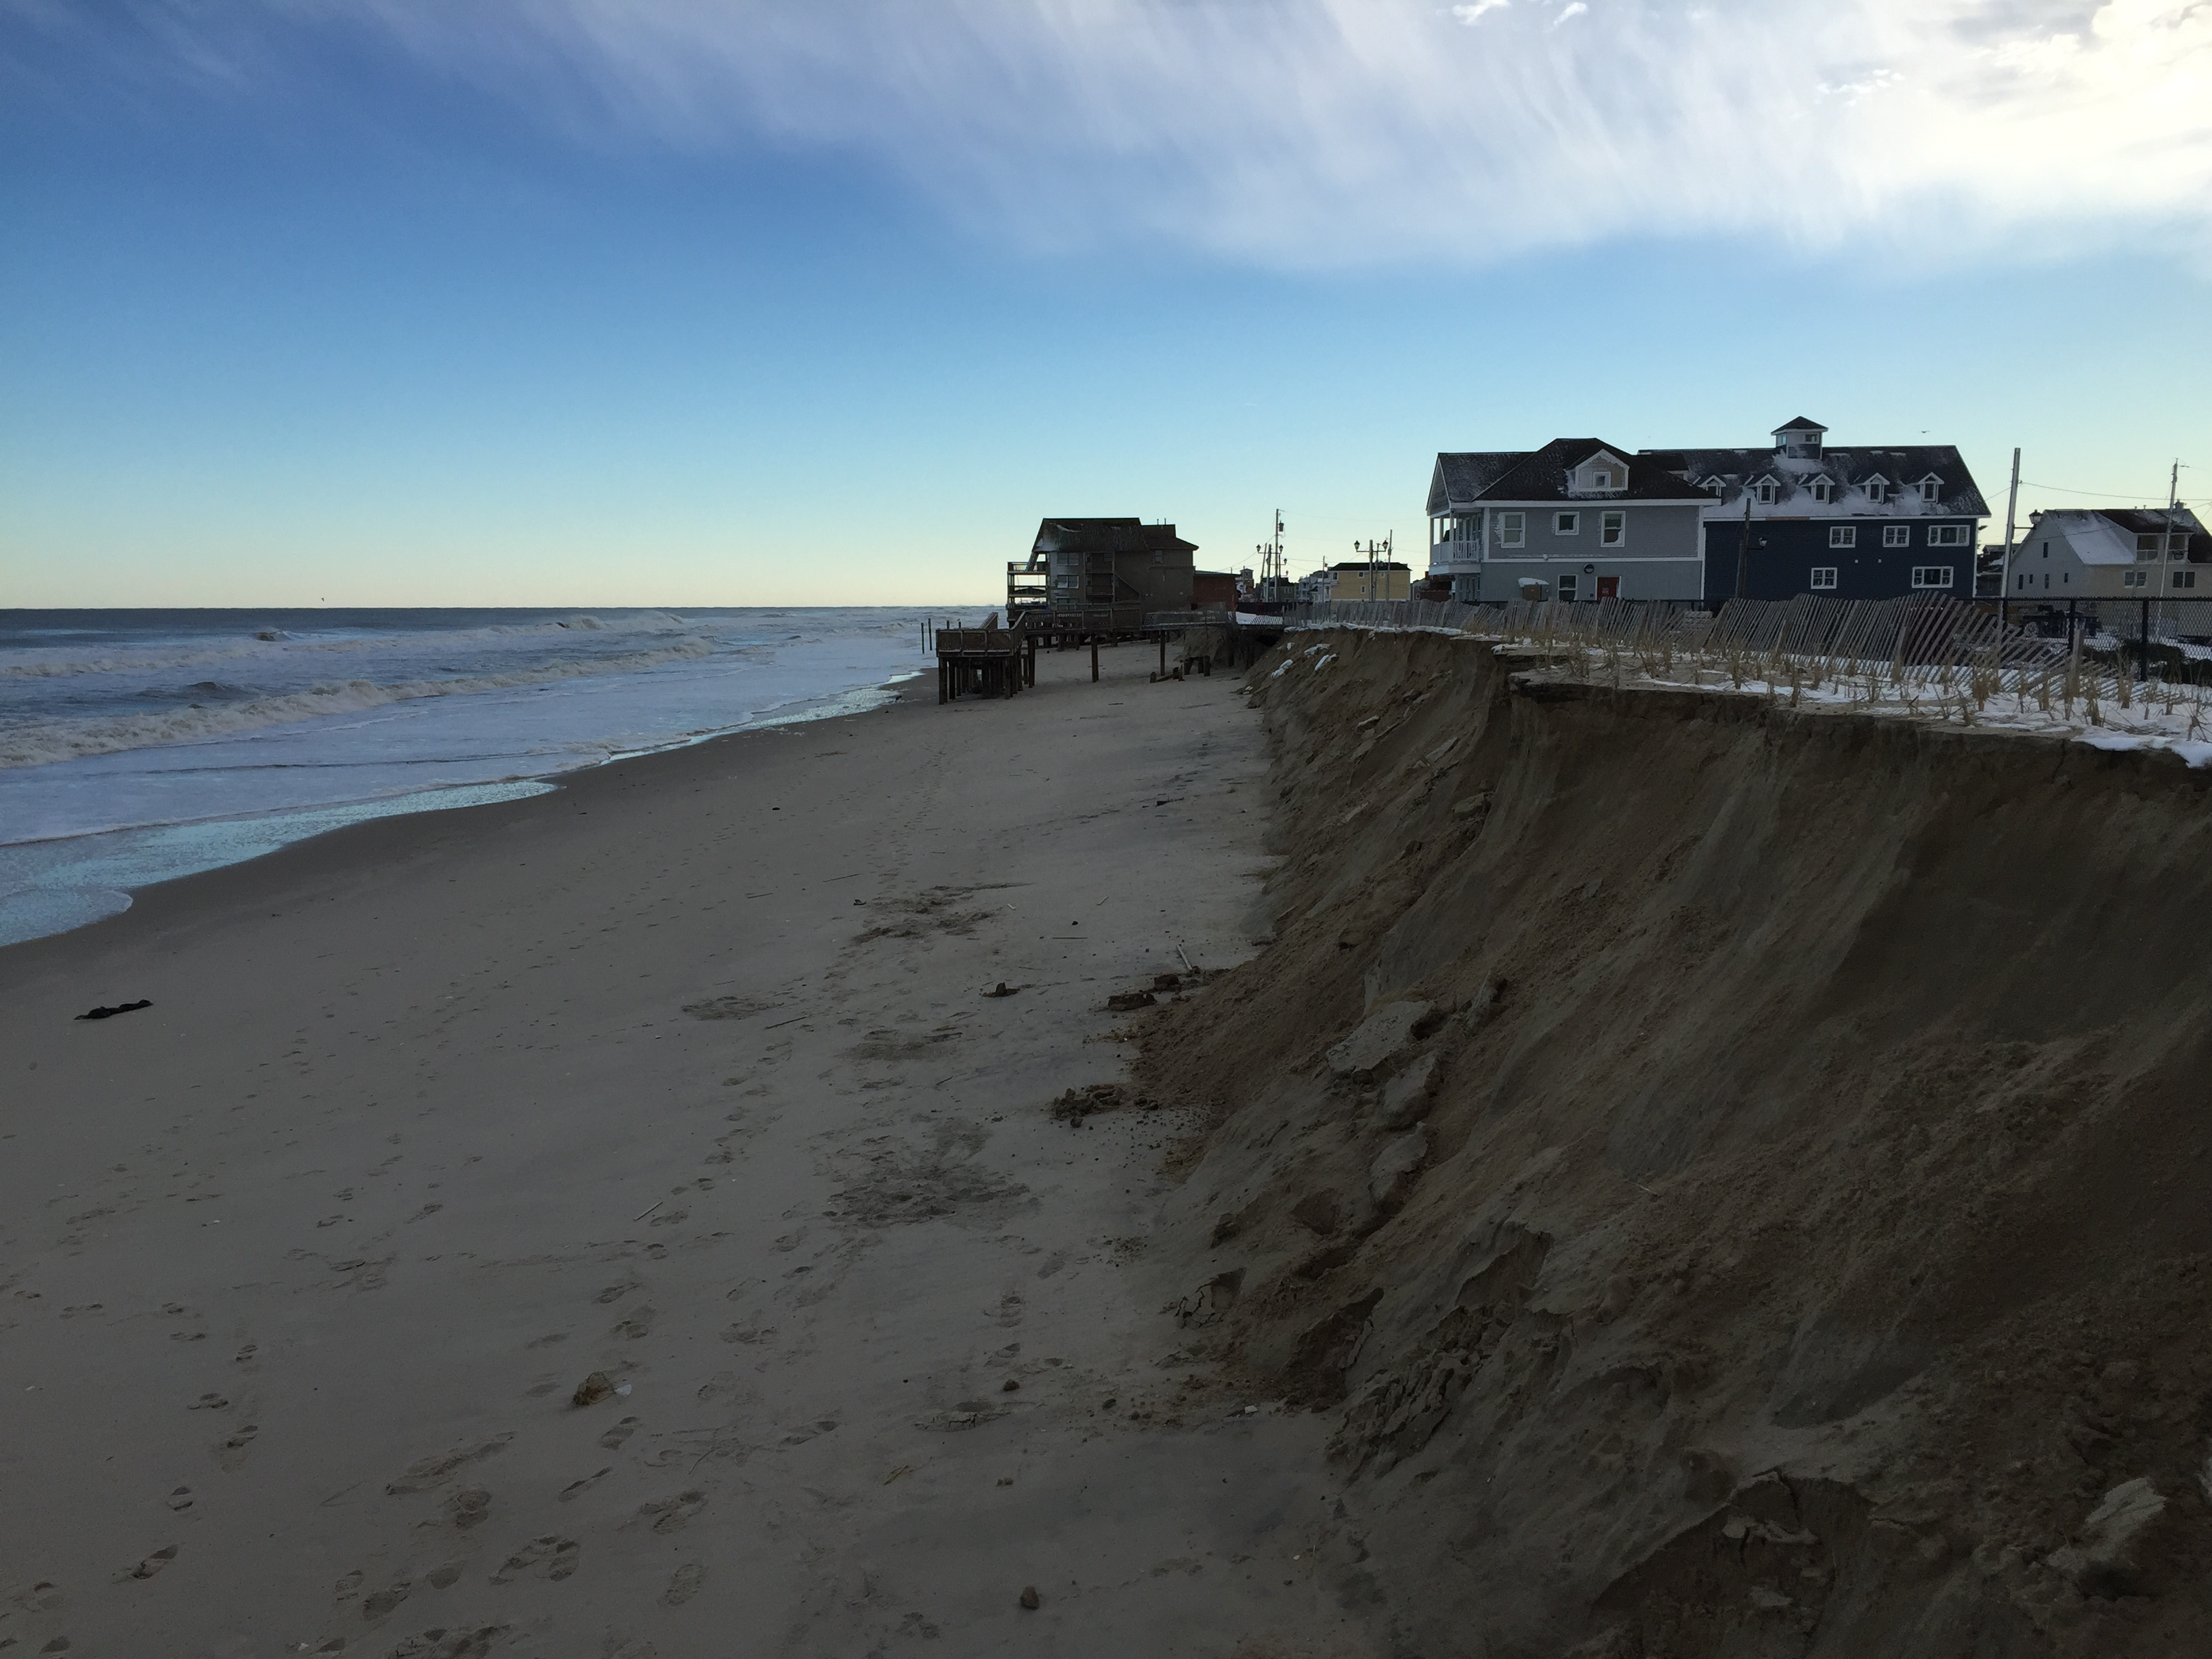 Damage to the oceanfront area of Ortley Beach, N.J., Jan. 24, 2016. (Photo: Daniel Nee)